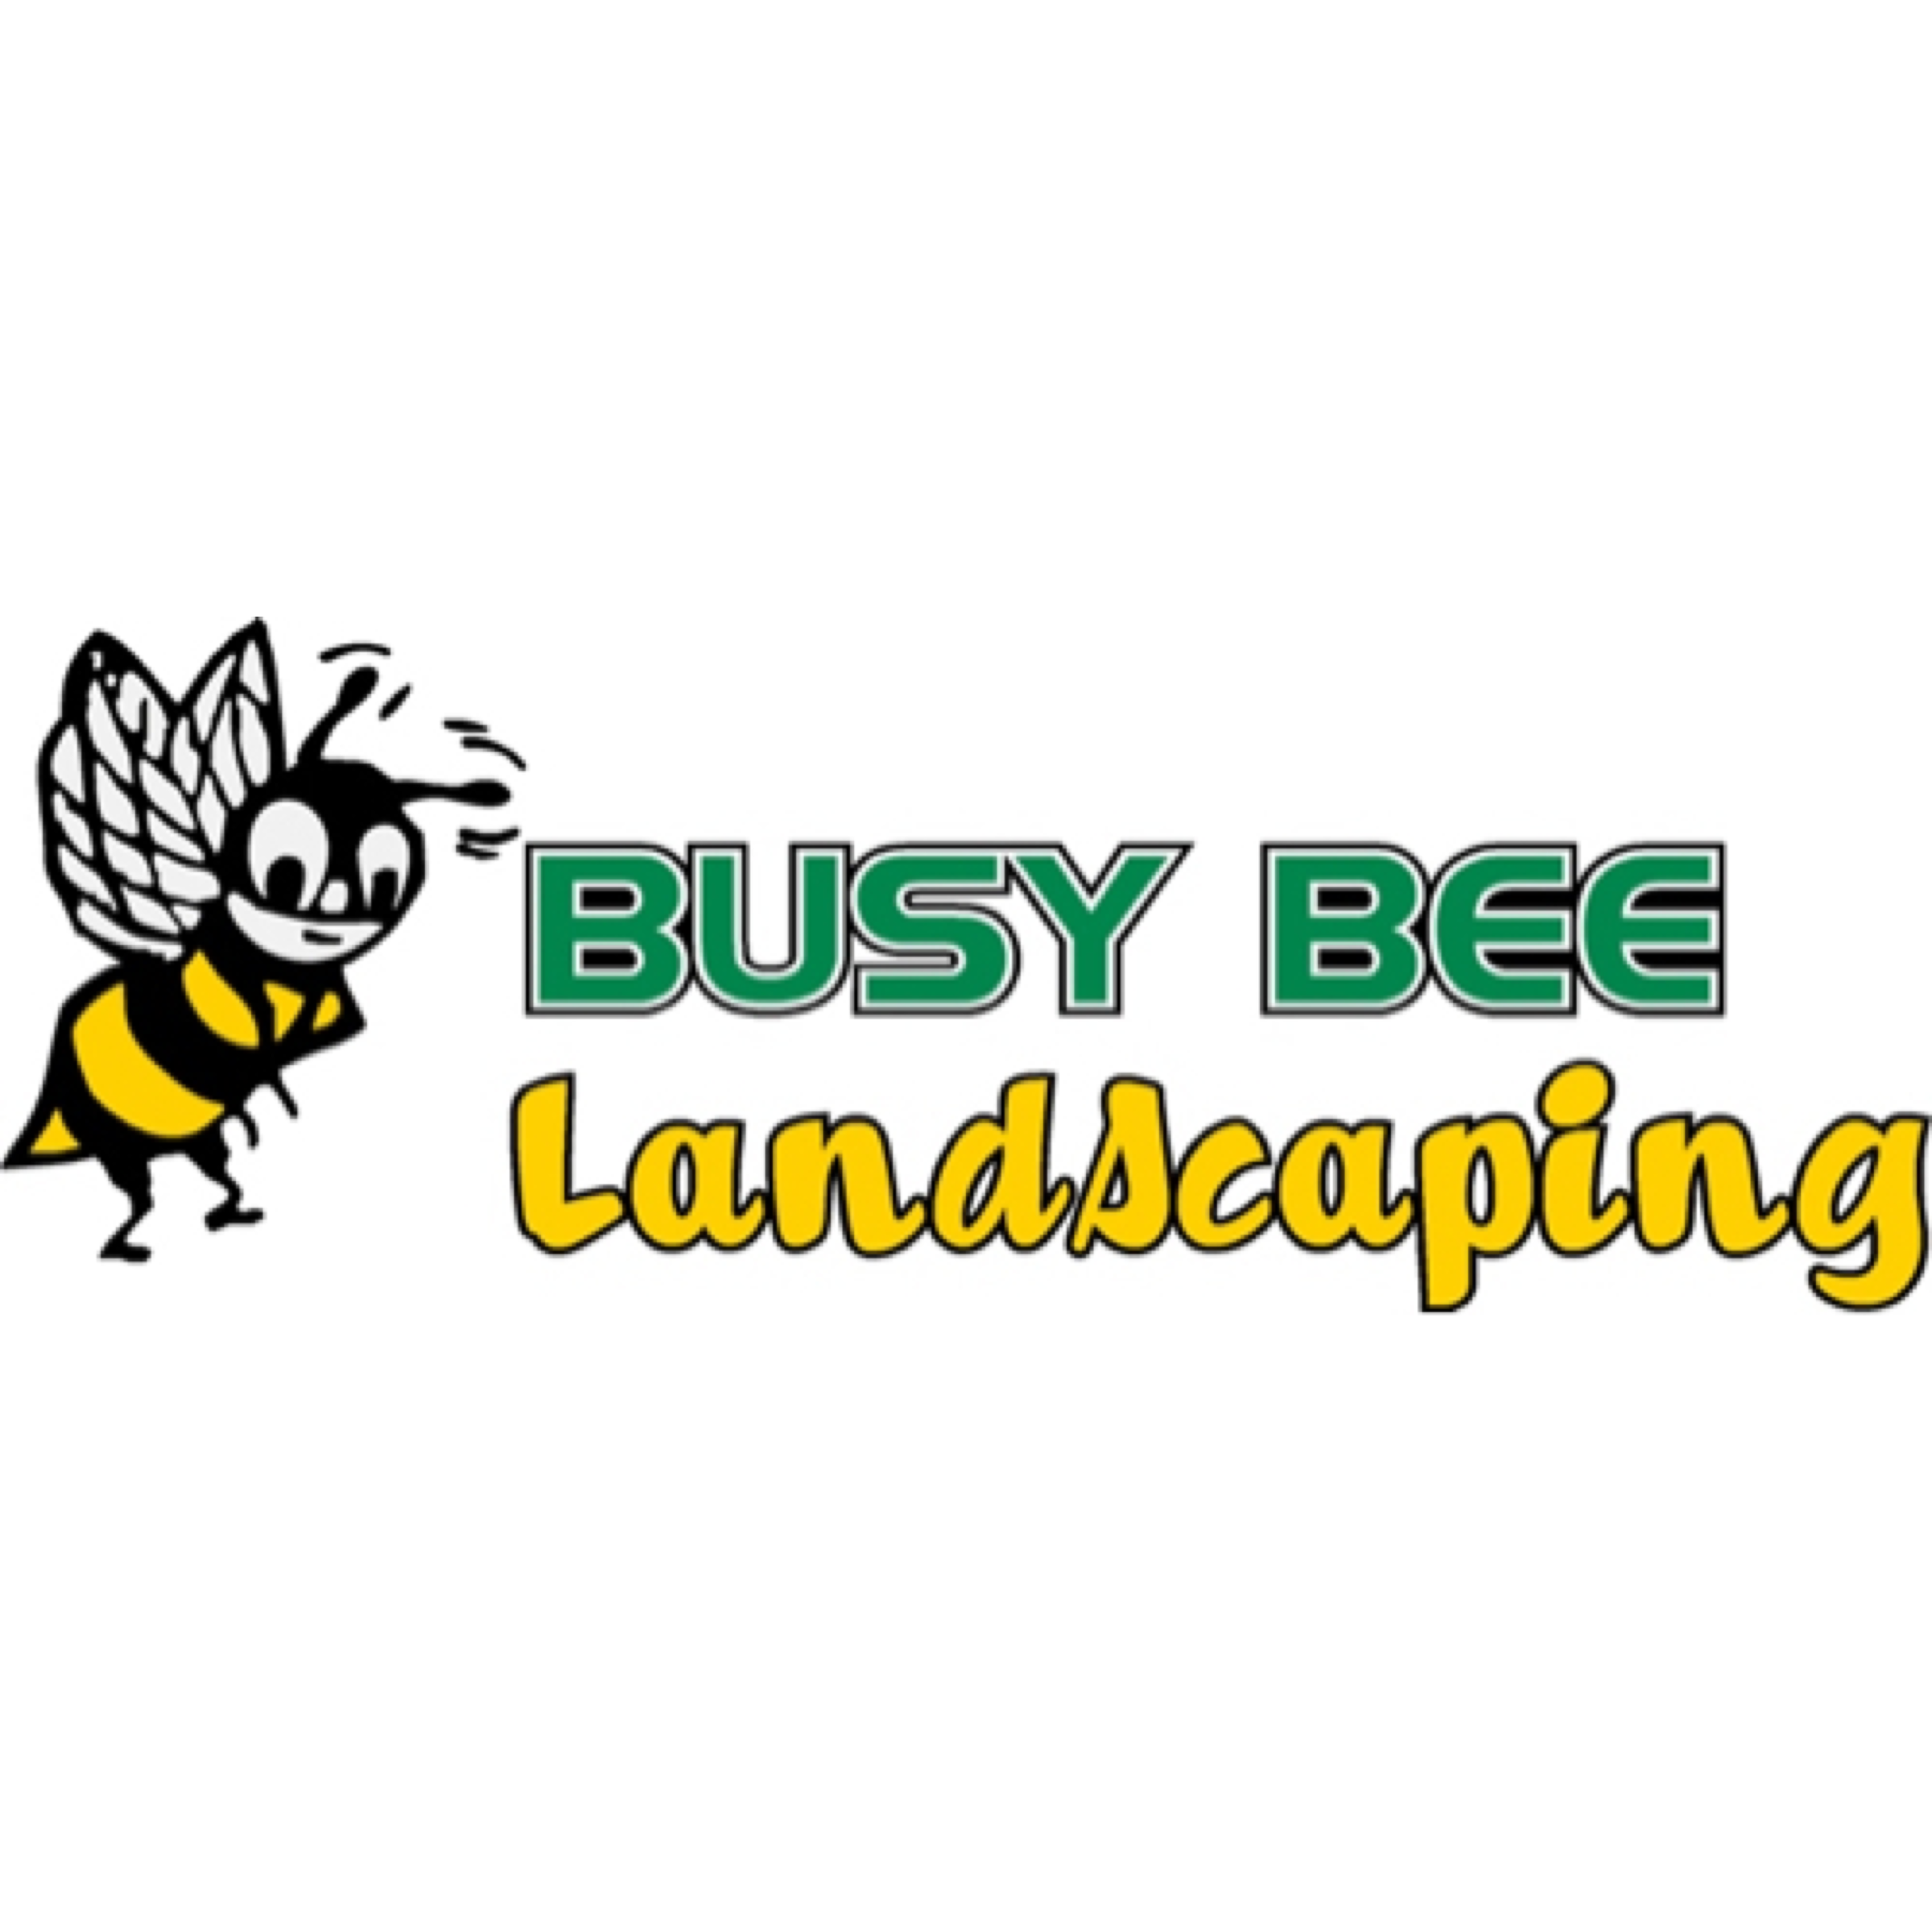 Busy Bee Landscaping Llc.